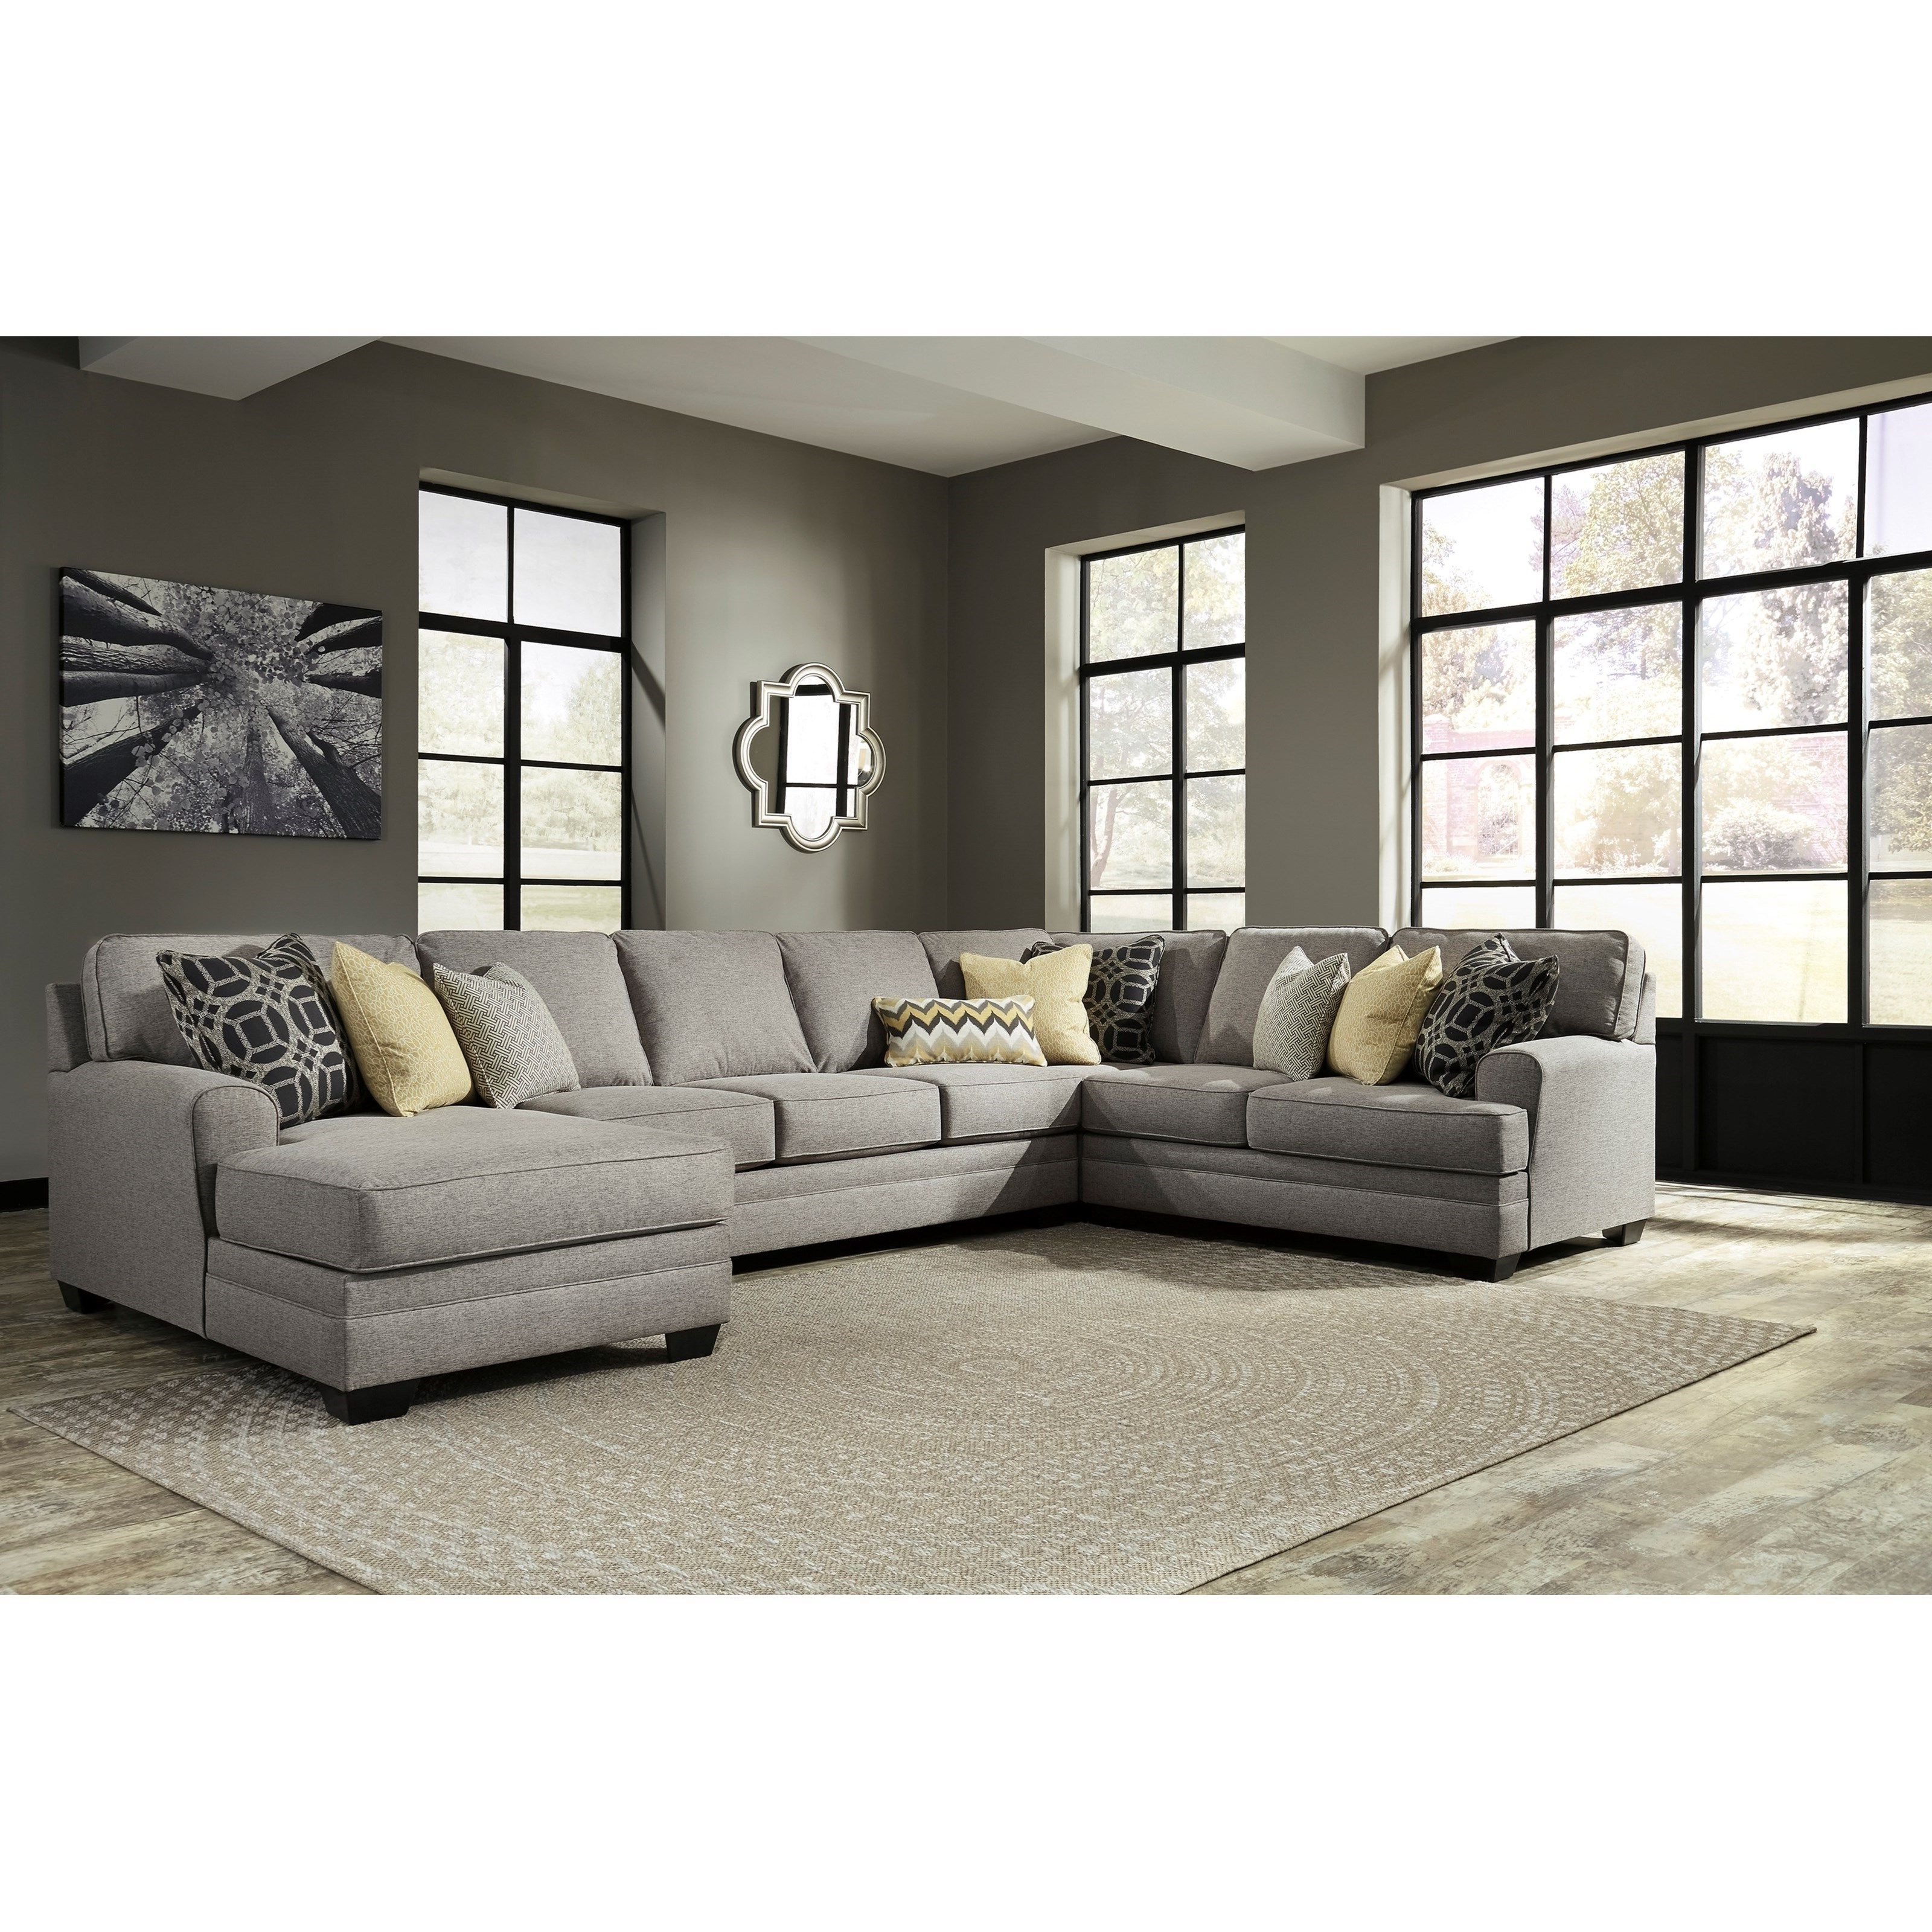 Sofas Regarding Recent Eau Claire Wi Sectional Sofas (View 14 of 20)